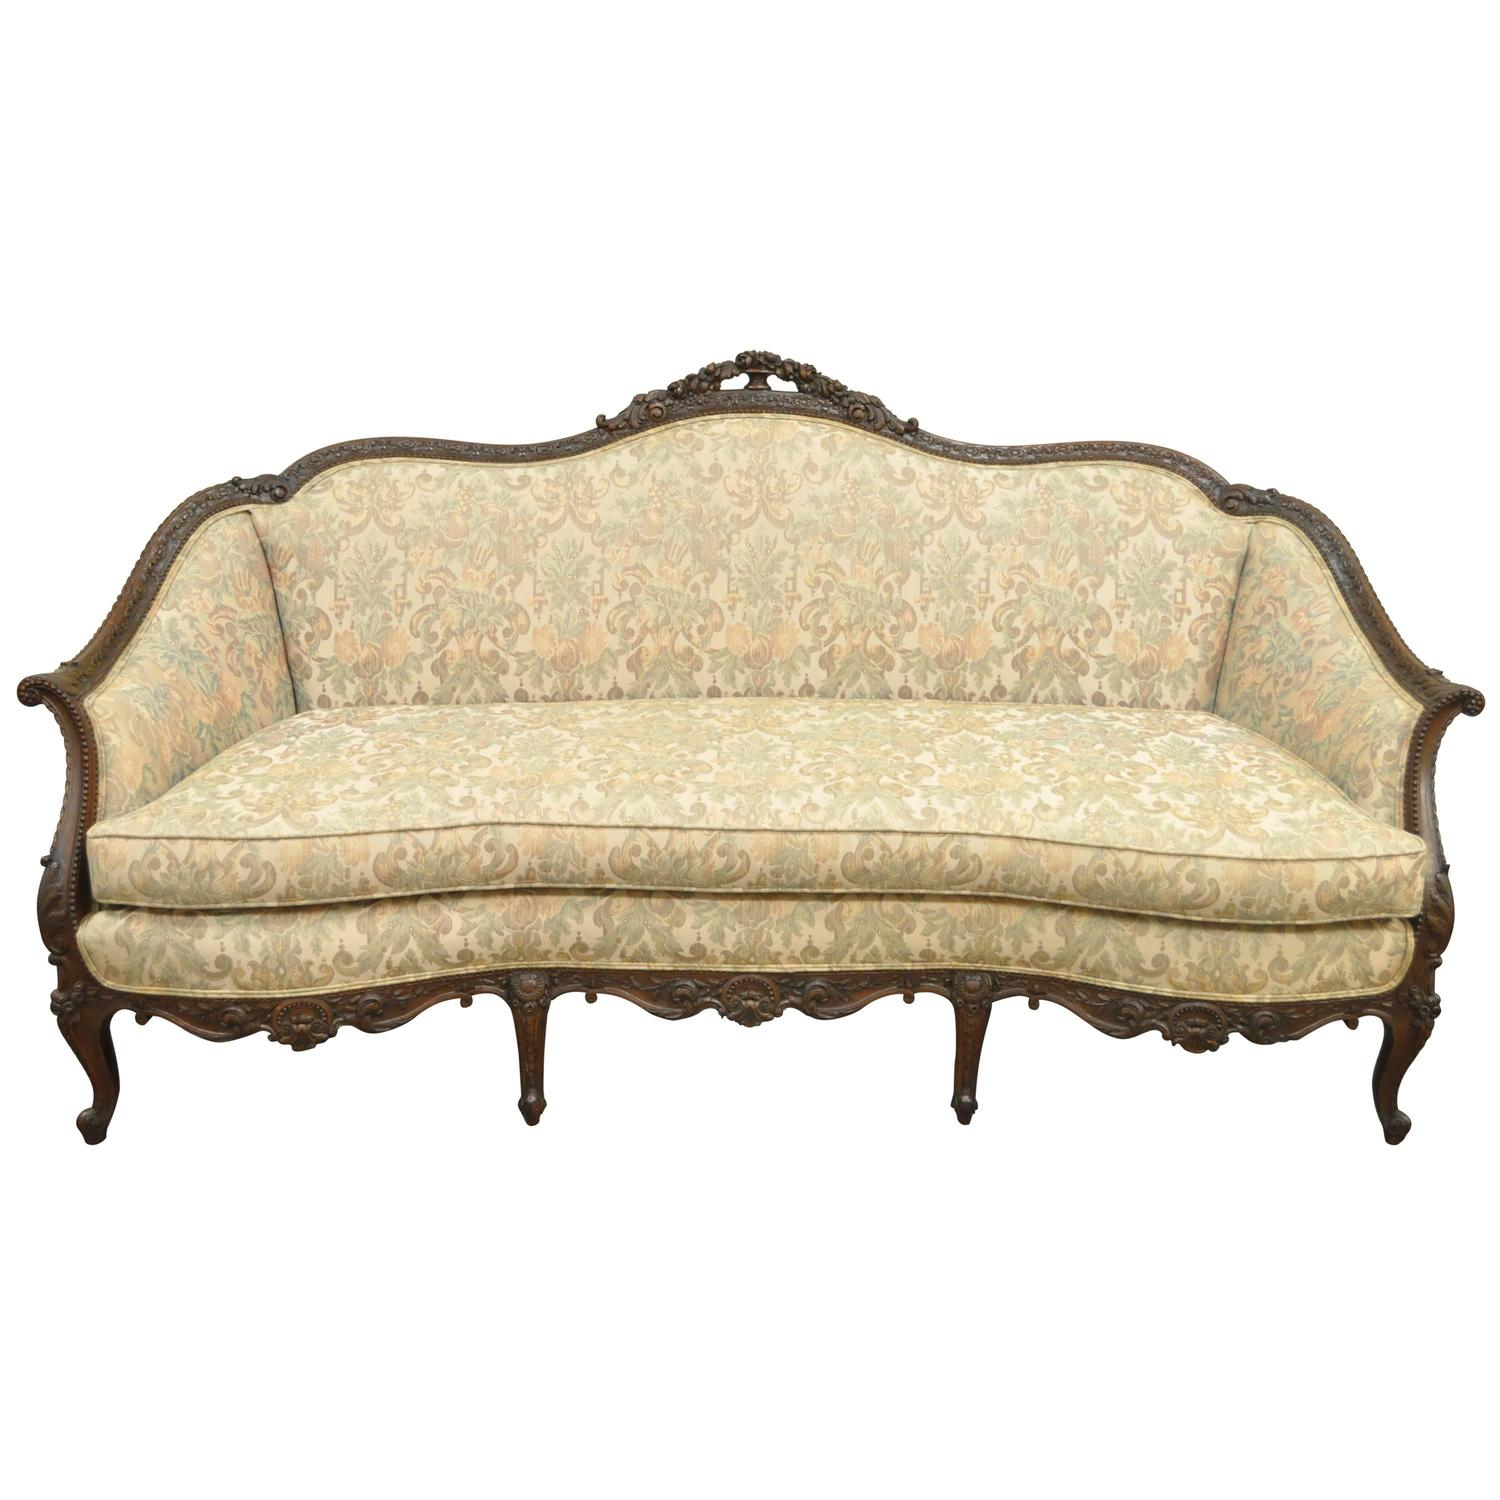 1930s French Louis Xv Hollywood Regency Style Finely Carved Mahogany Sofa At 1stdibs